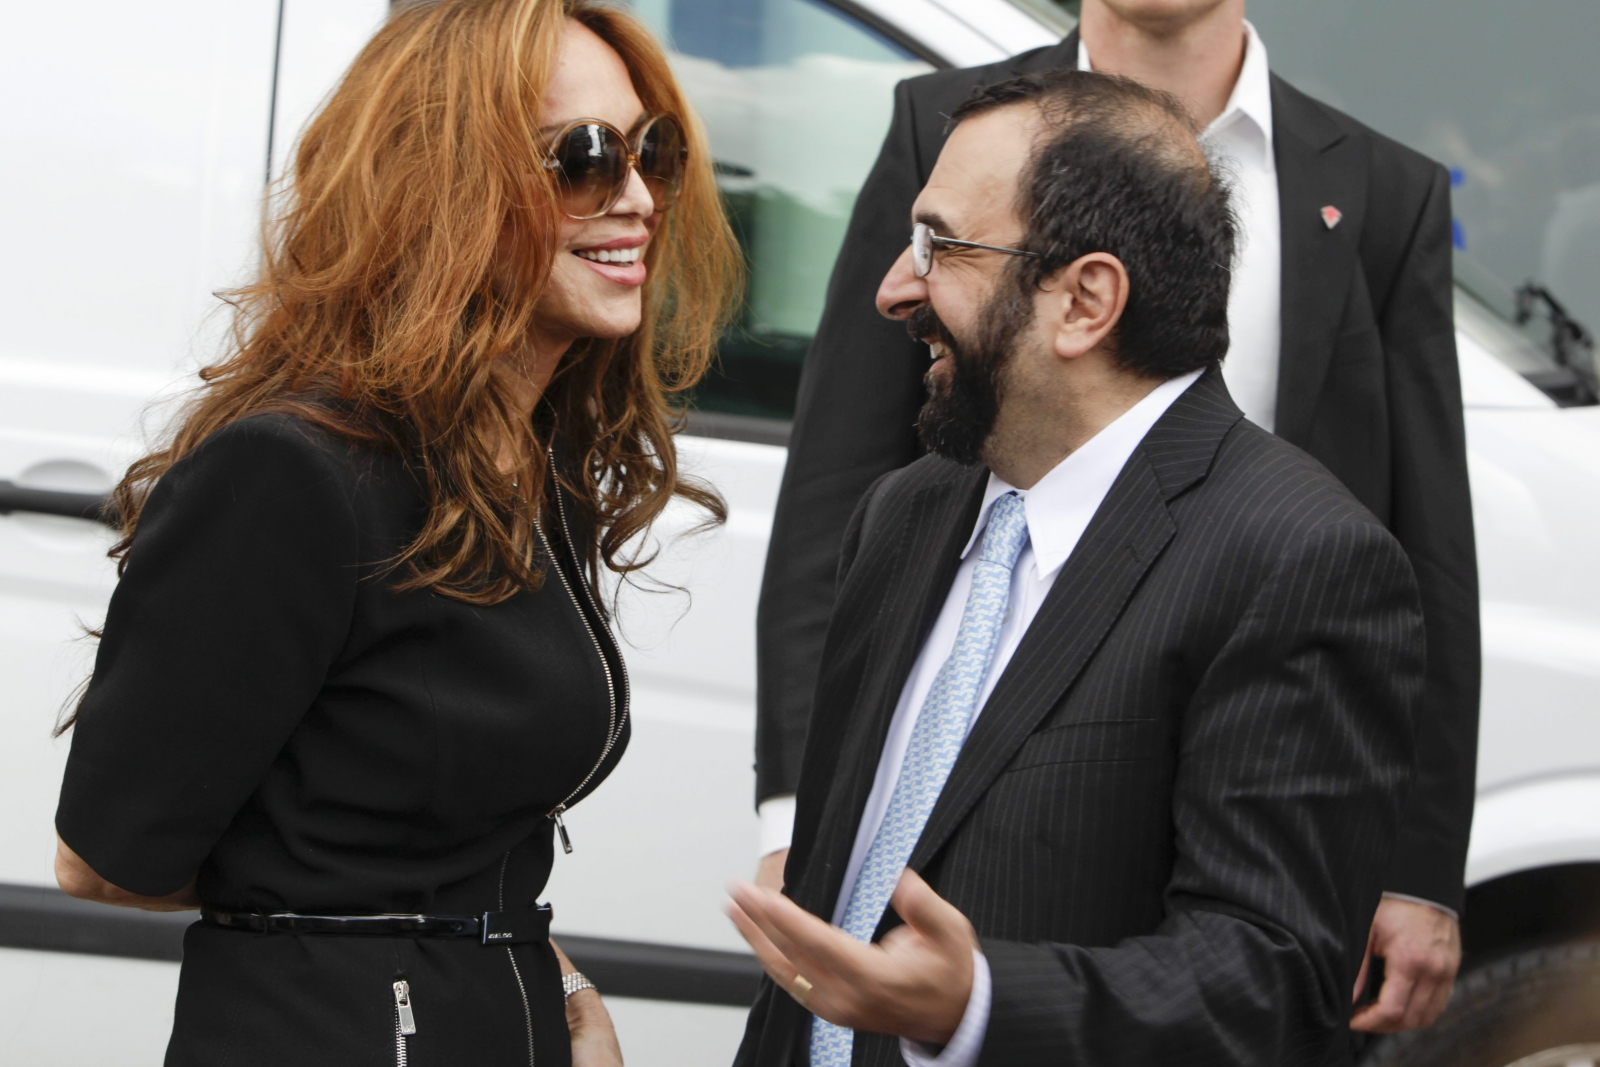 Anti-Islam activist Pamela Geller at a demsonstration in Sweden. (Getty)